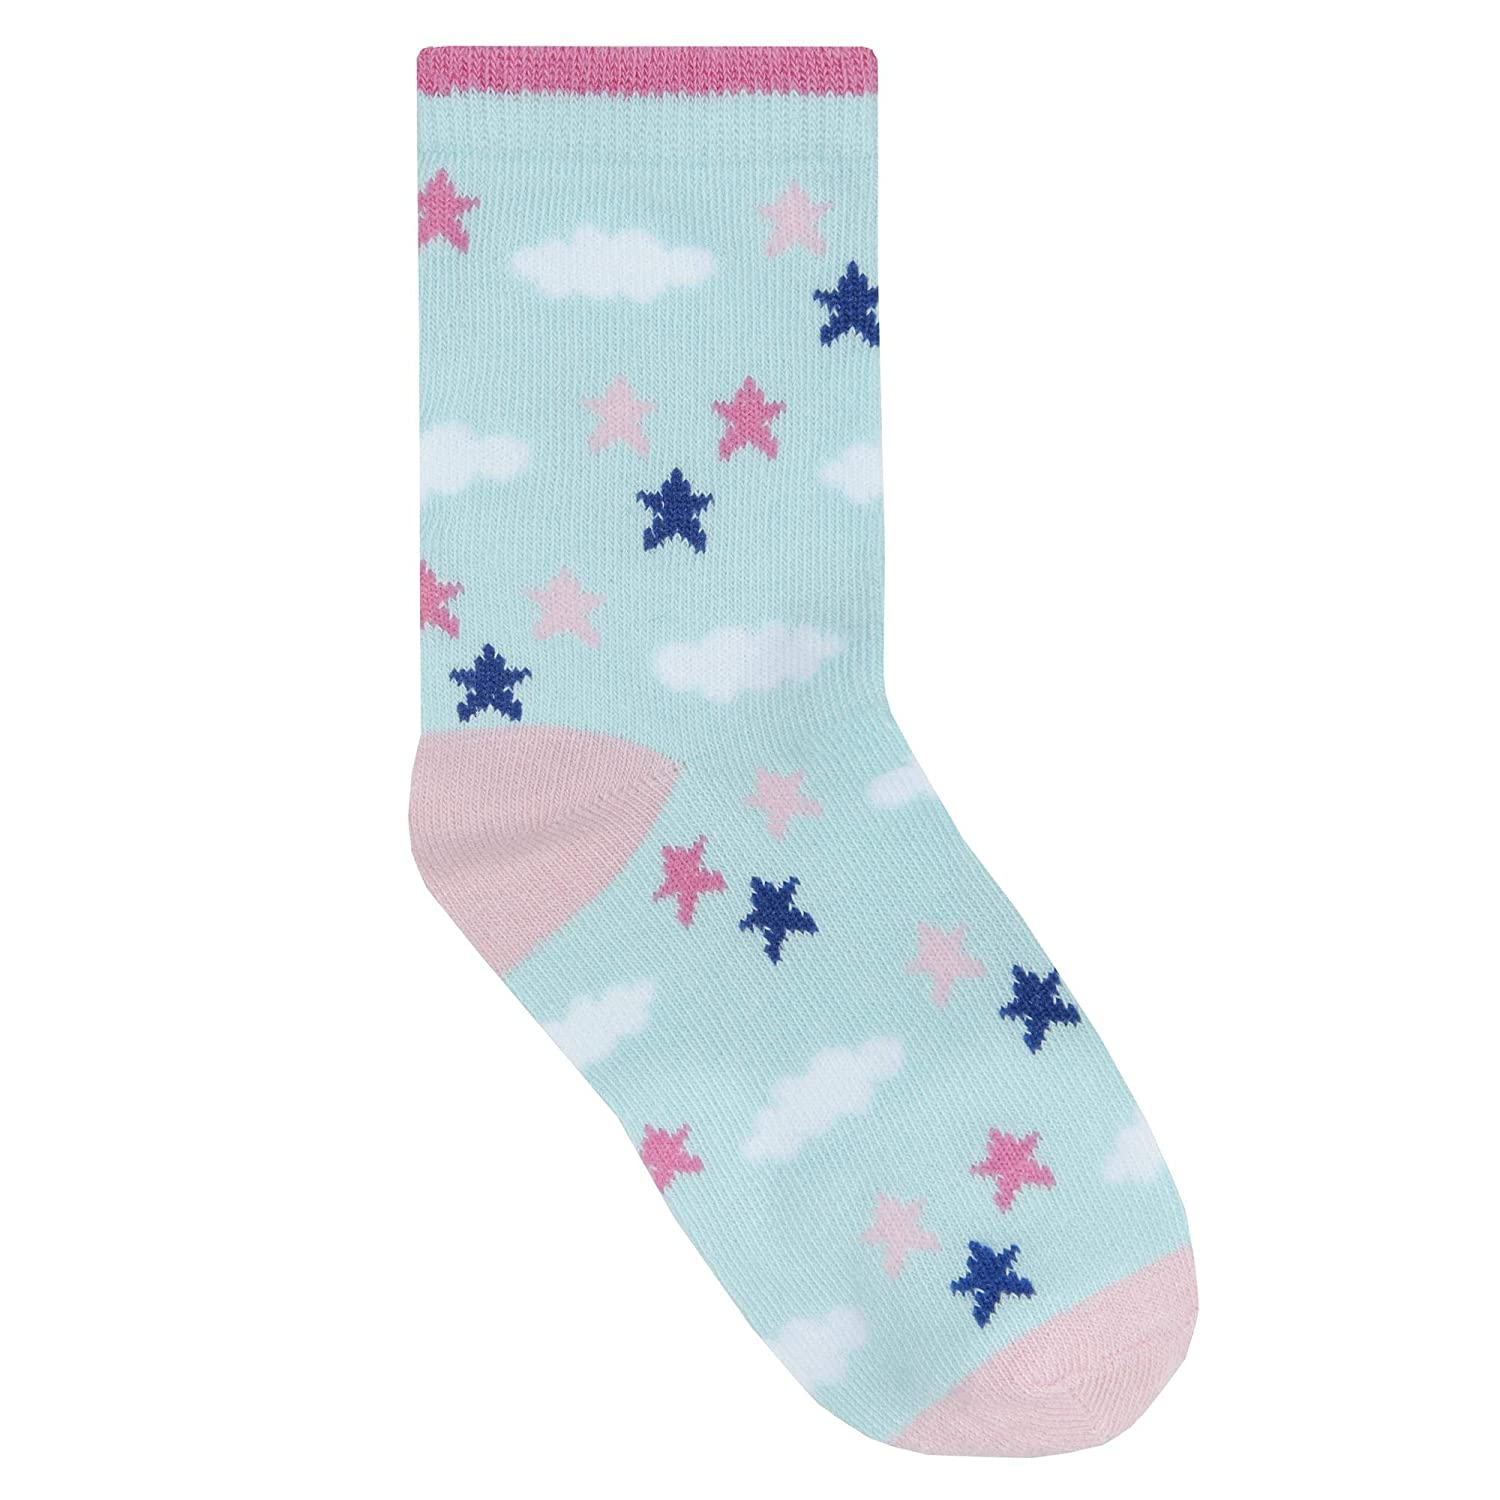 Girls 3 Pack of Unicorn Socks